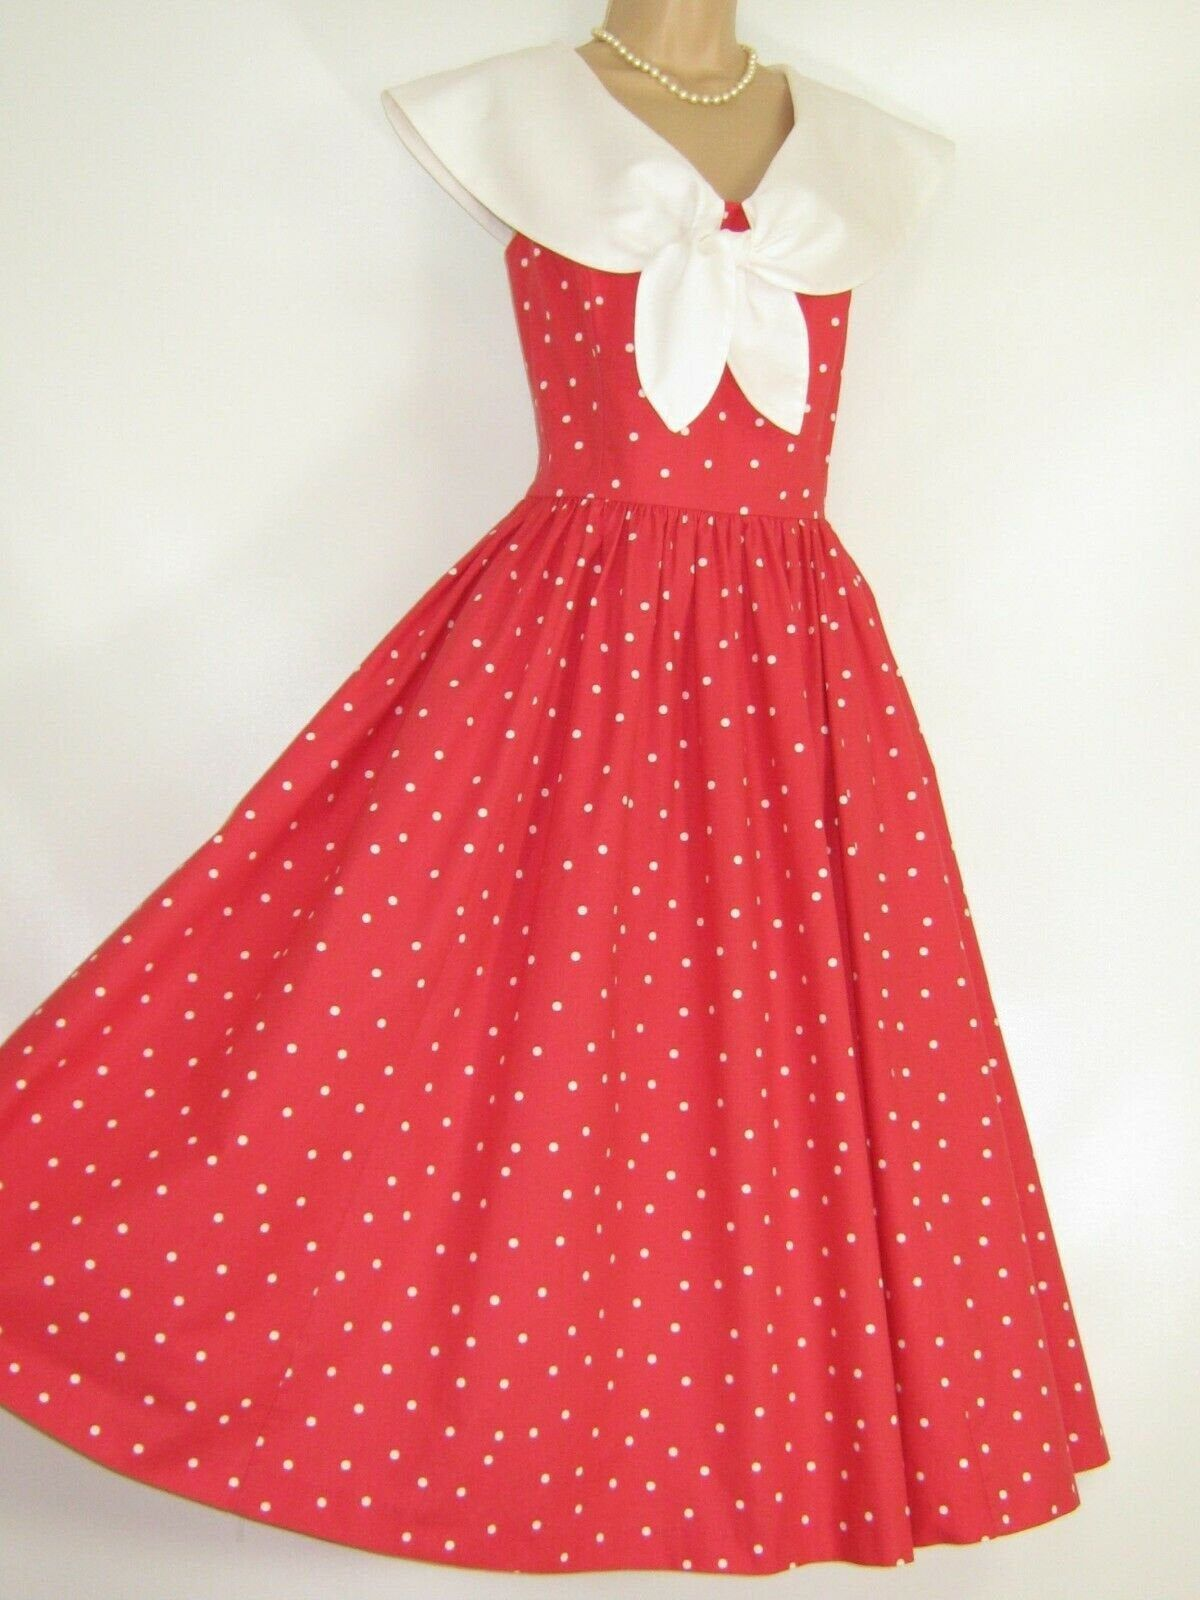 Pin On Summer Dresses Skirts Trousers Vintagelauraashley [ 1600 x 1200 Pixel ]